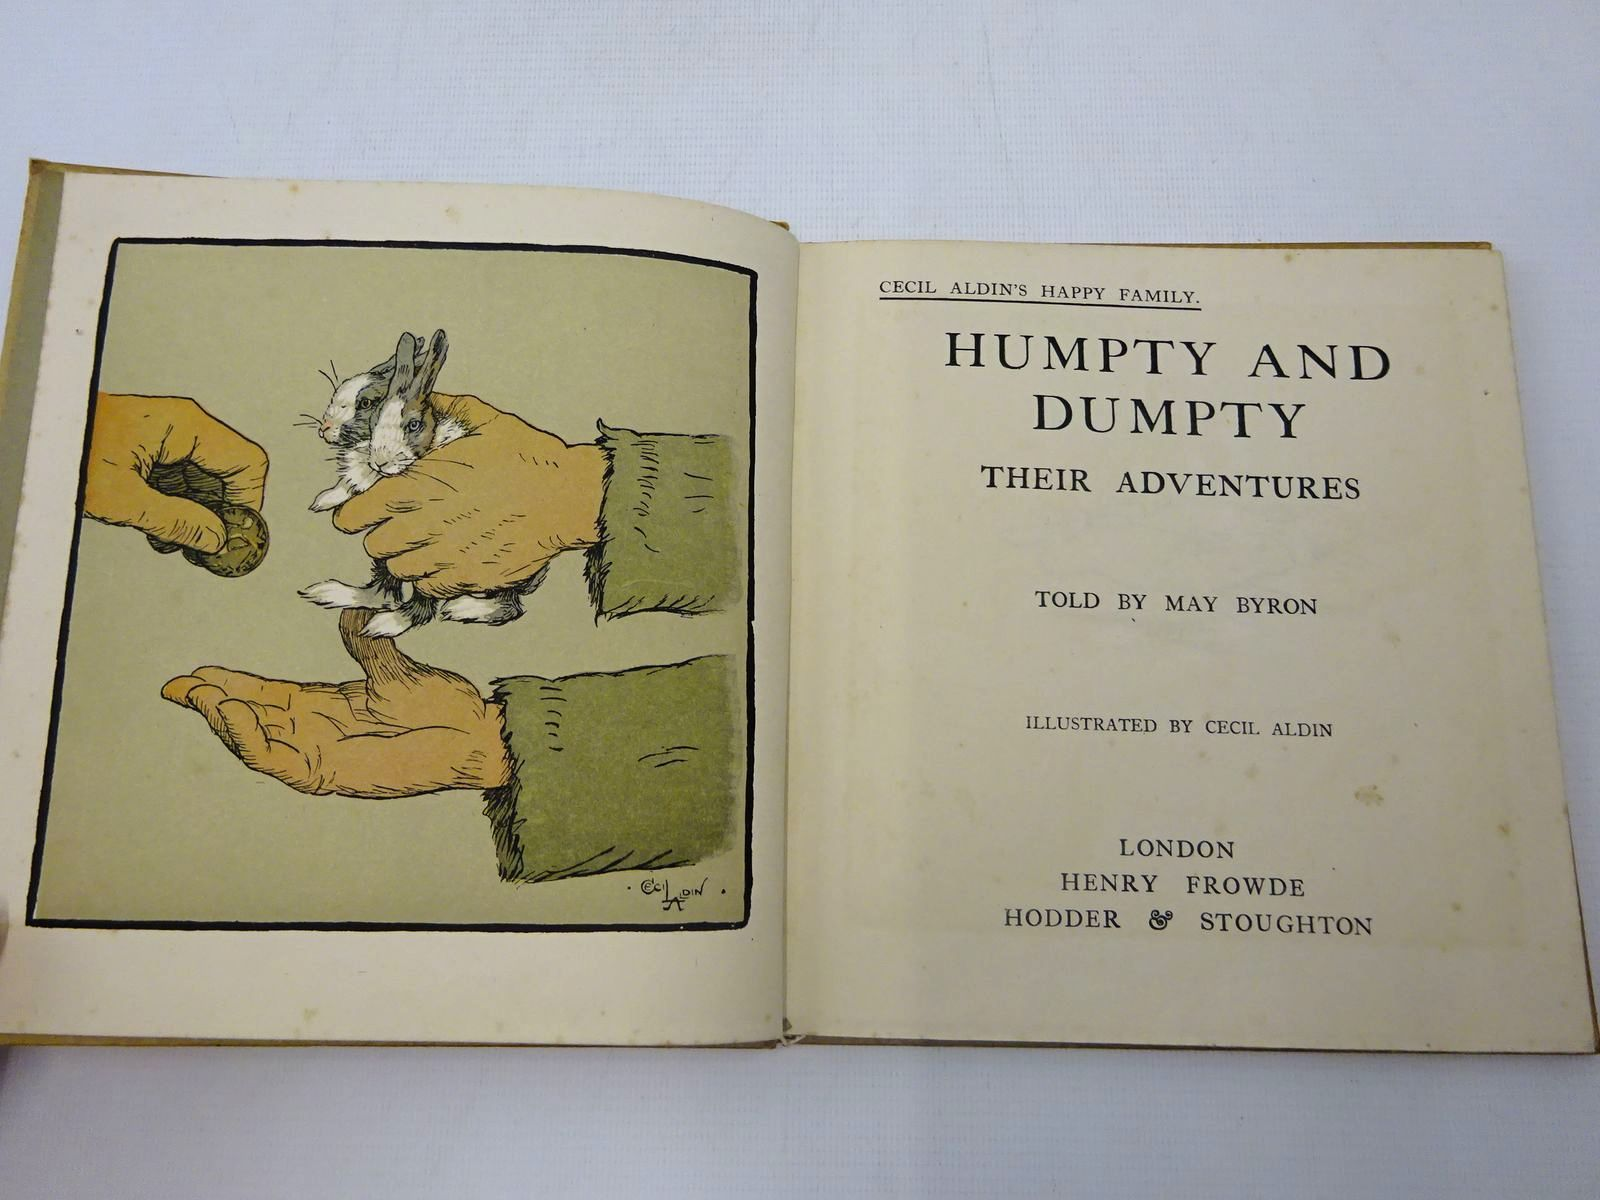 Photo of HUMPTY AND DUMPTY THEIR ADVENTURES written by Byron, May illustrated by Aldin, Cecil published by Henry Frowde, Hodder & Stoughton (STOCK CODE: 2127170)  for sale by Stella & Rose's Books